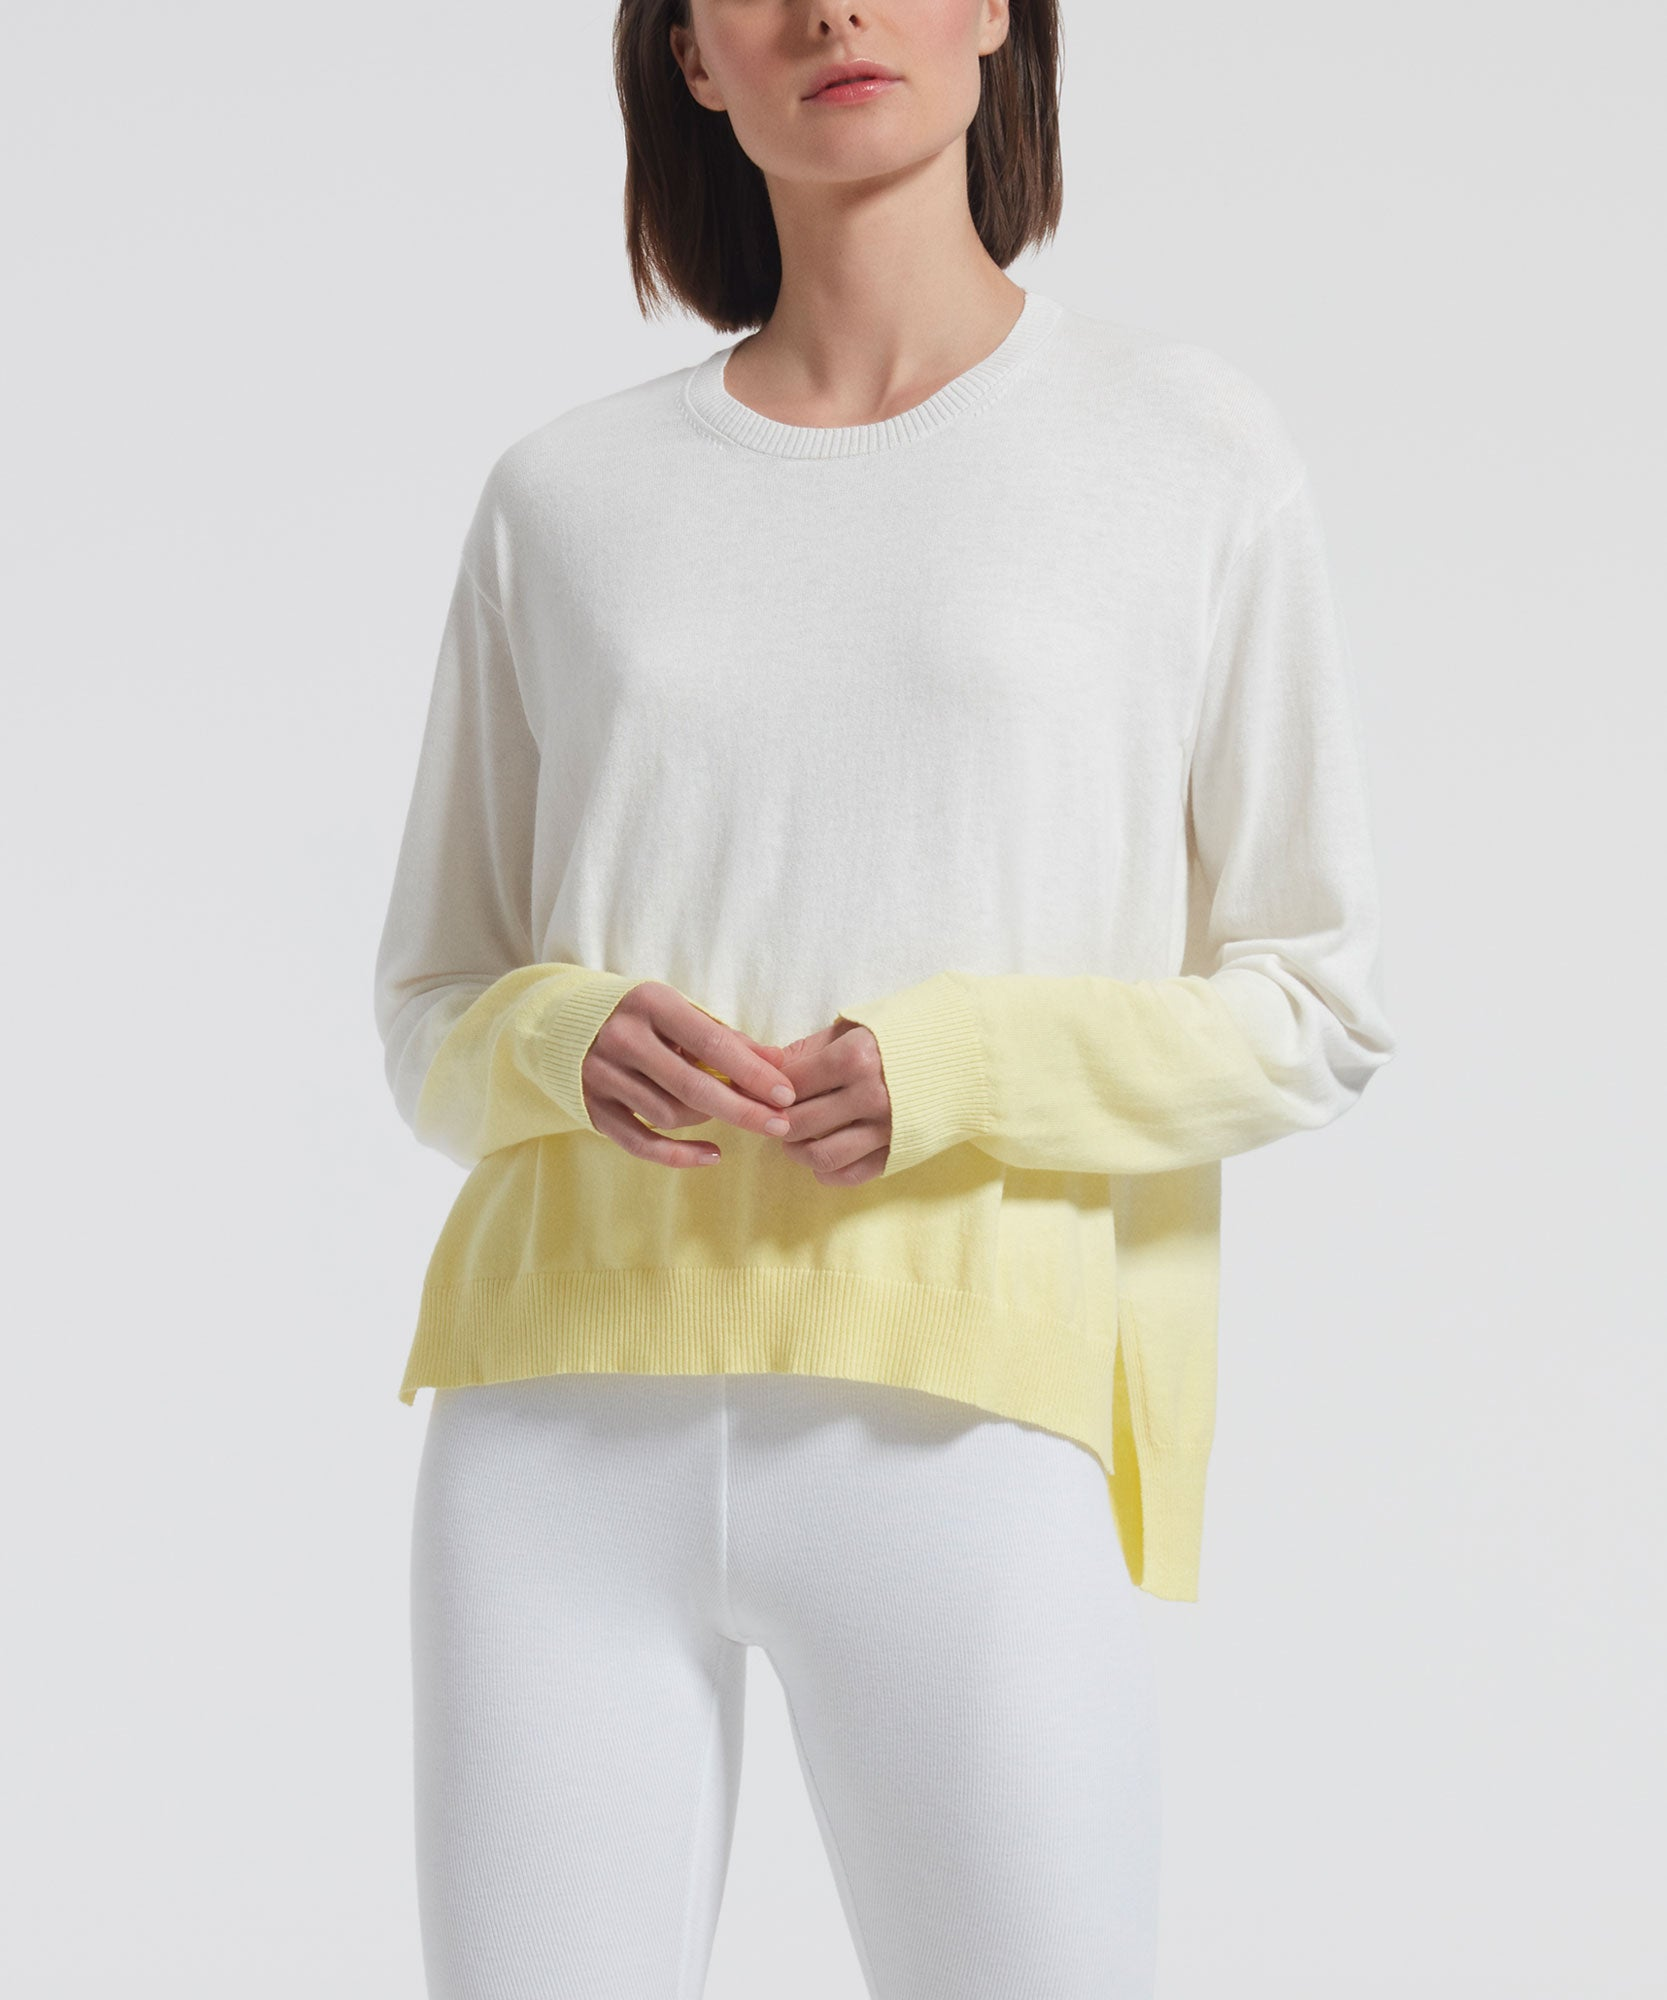 Lemon Boxy Dip Dye Crew Neck Sweater - Women's Luxe Sweater by ATM Anthony Thomas Melillo